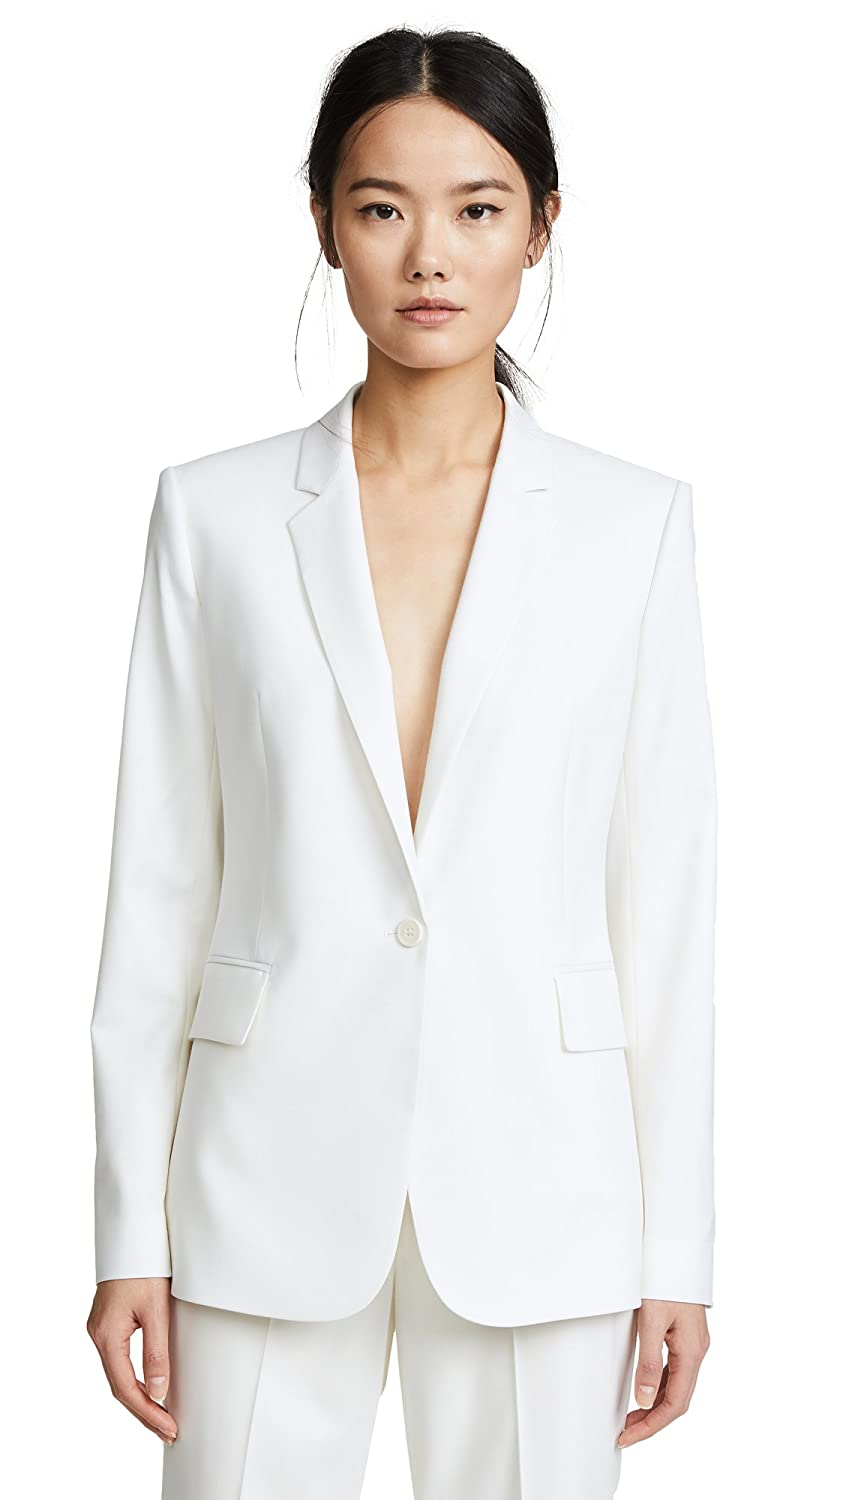 Theory Womens Classic One Button Essential Jacket